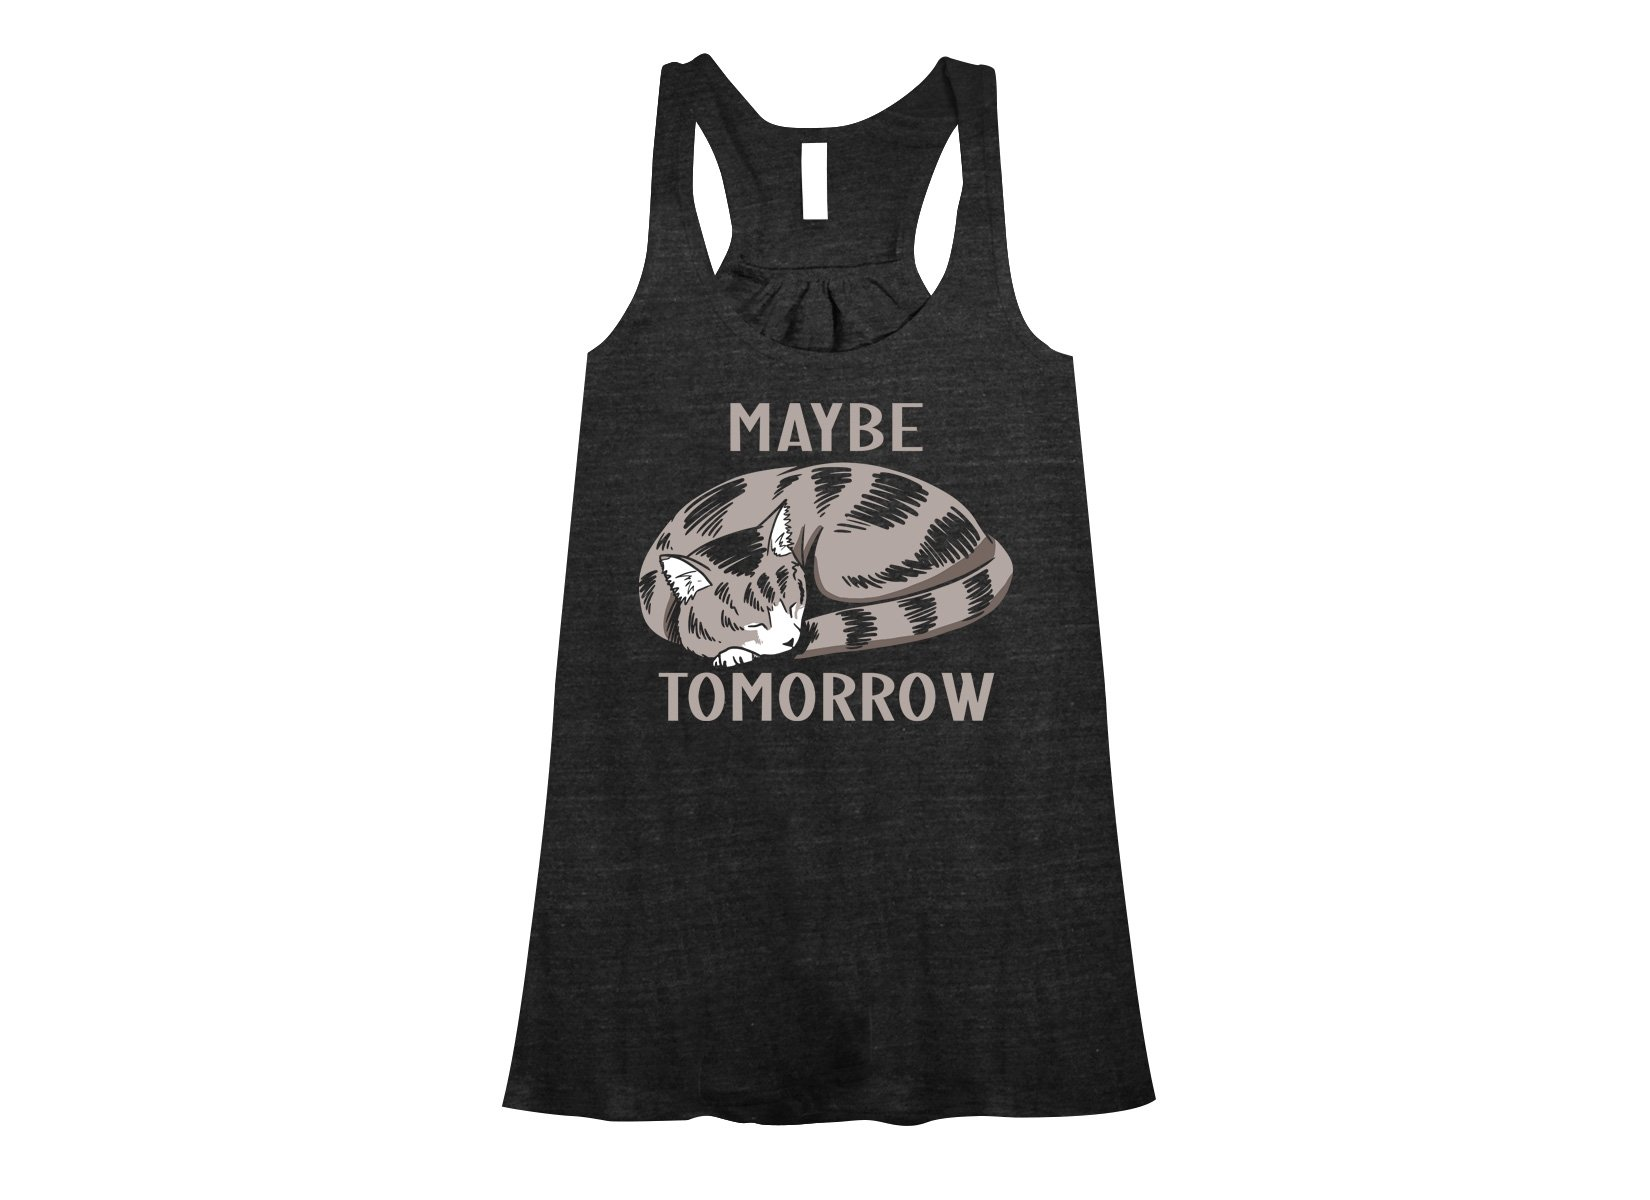 Maybe Tomorrow on Womens Tanks T-Shirt